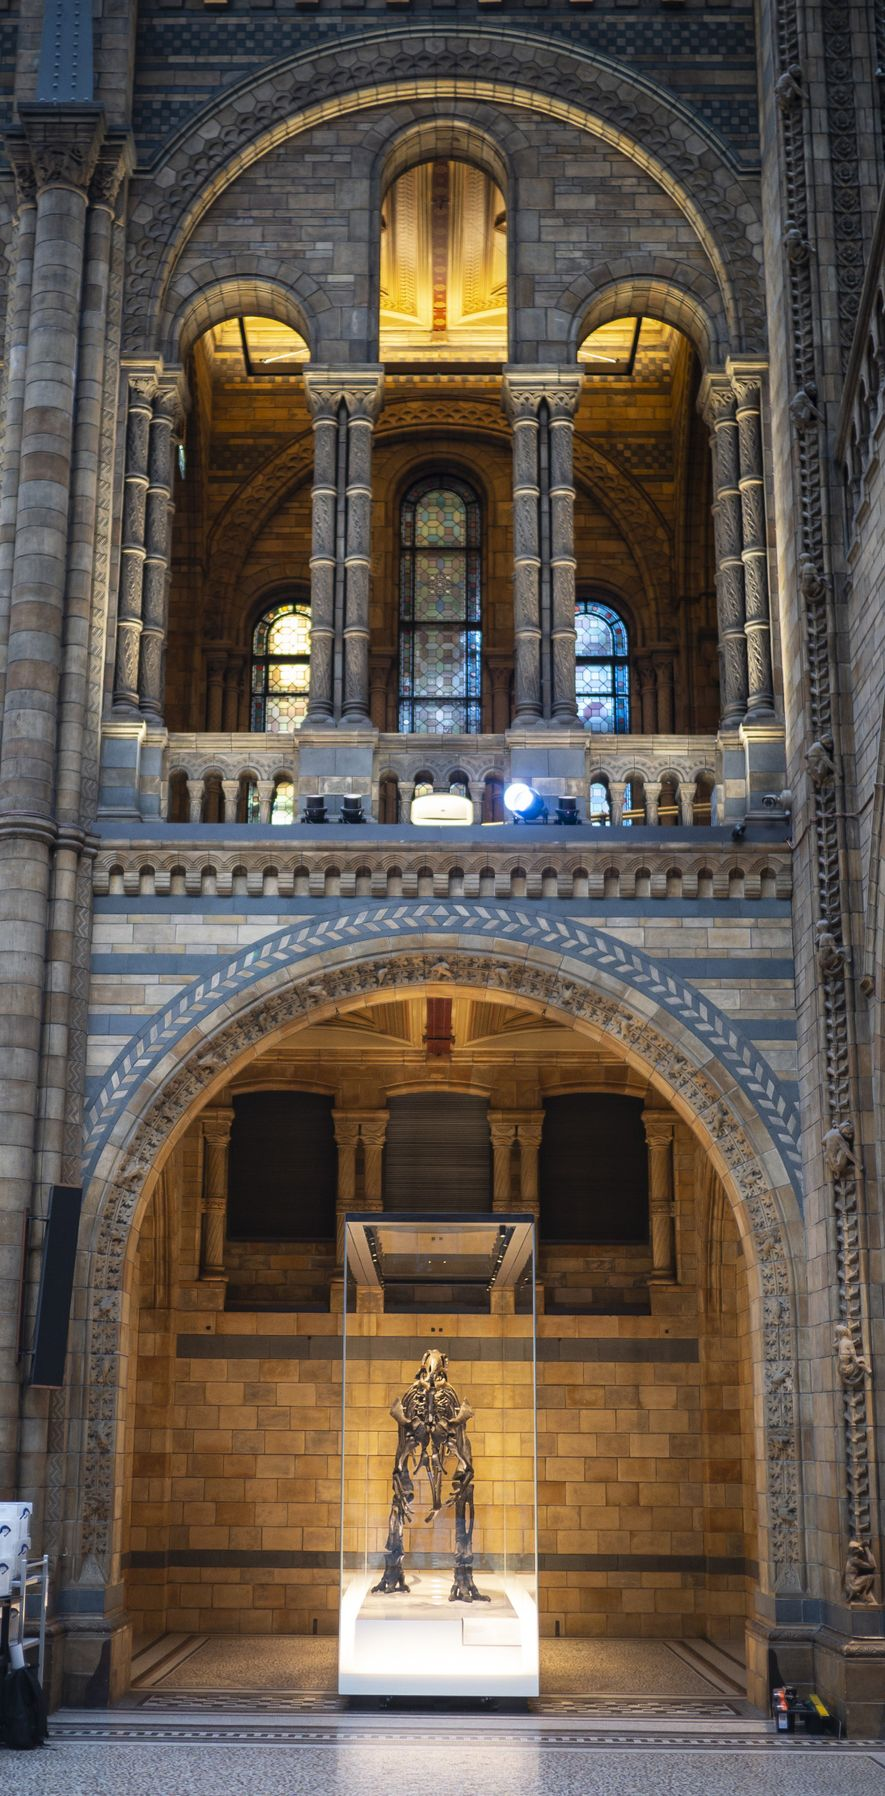 Mantellisaurus is now back on display in Hintze Hall. Like many other specimens, the skeleton has a new digital life and will be able to be accessed by researchers all over the world.